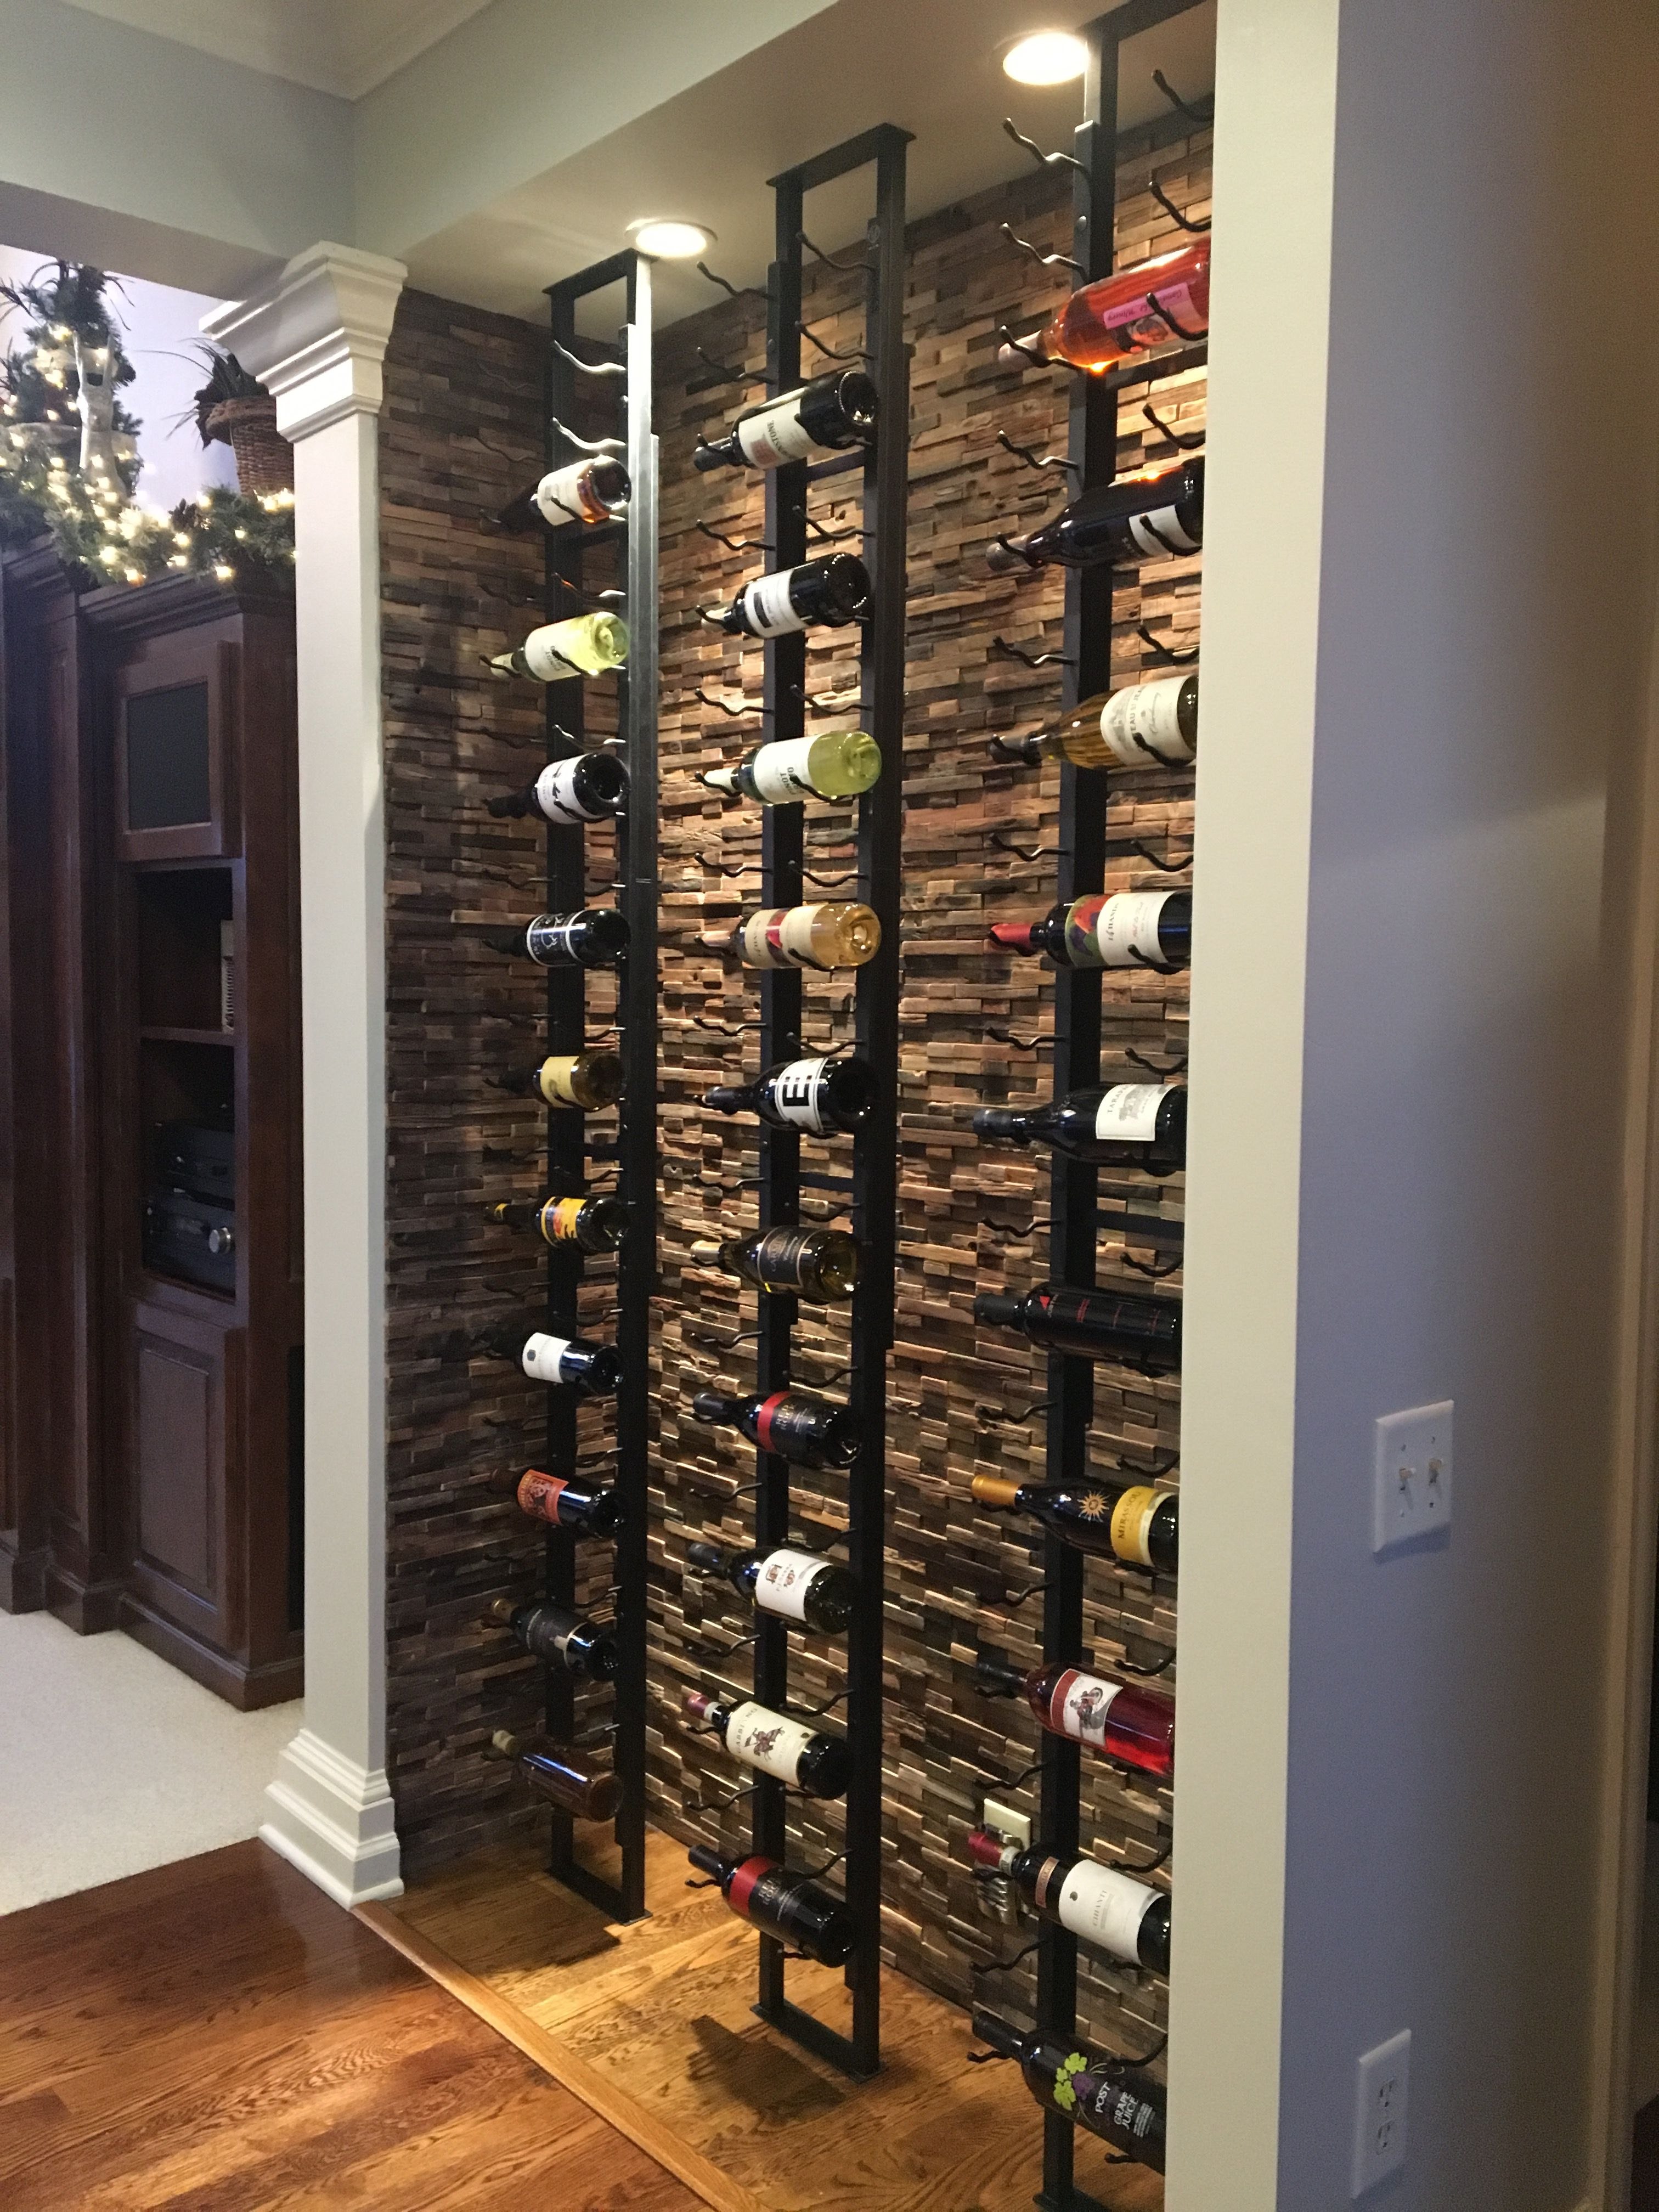 A wine cellar made up of VintageView wine racks on a floor to